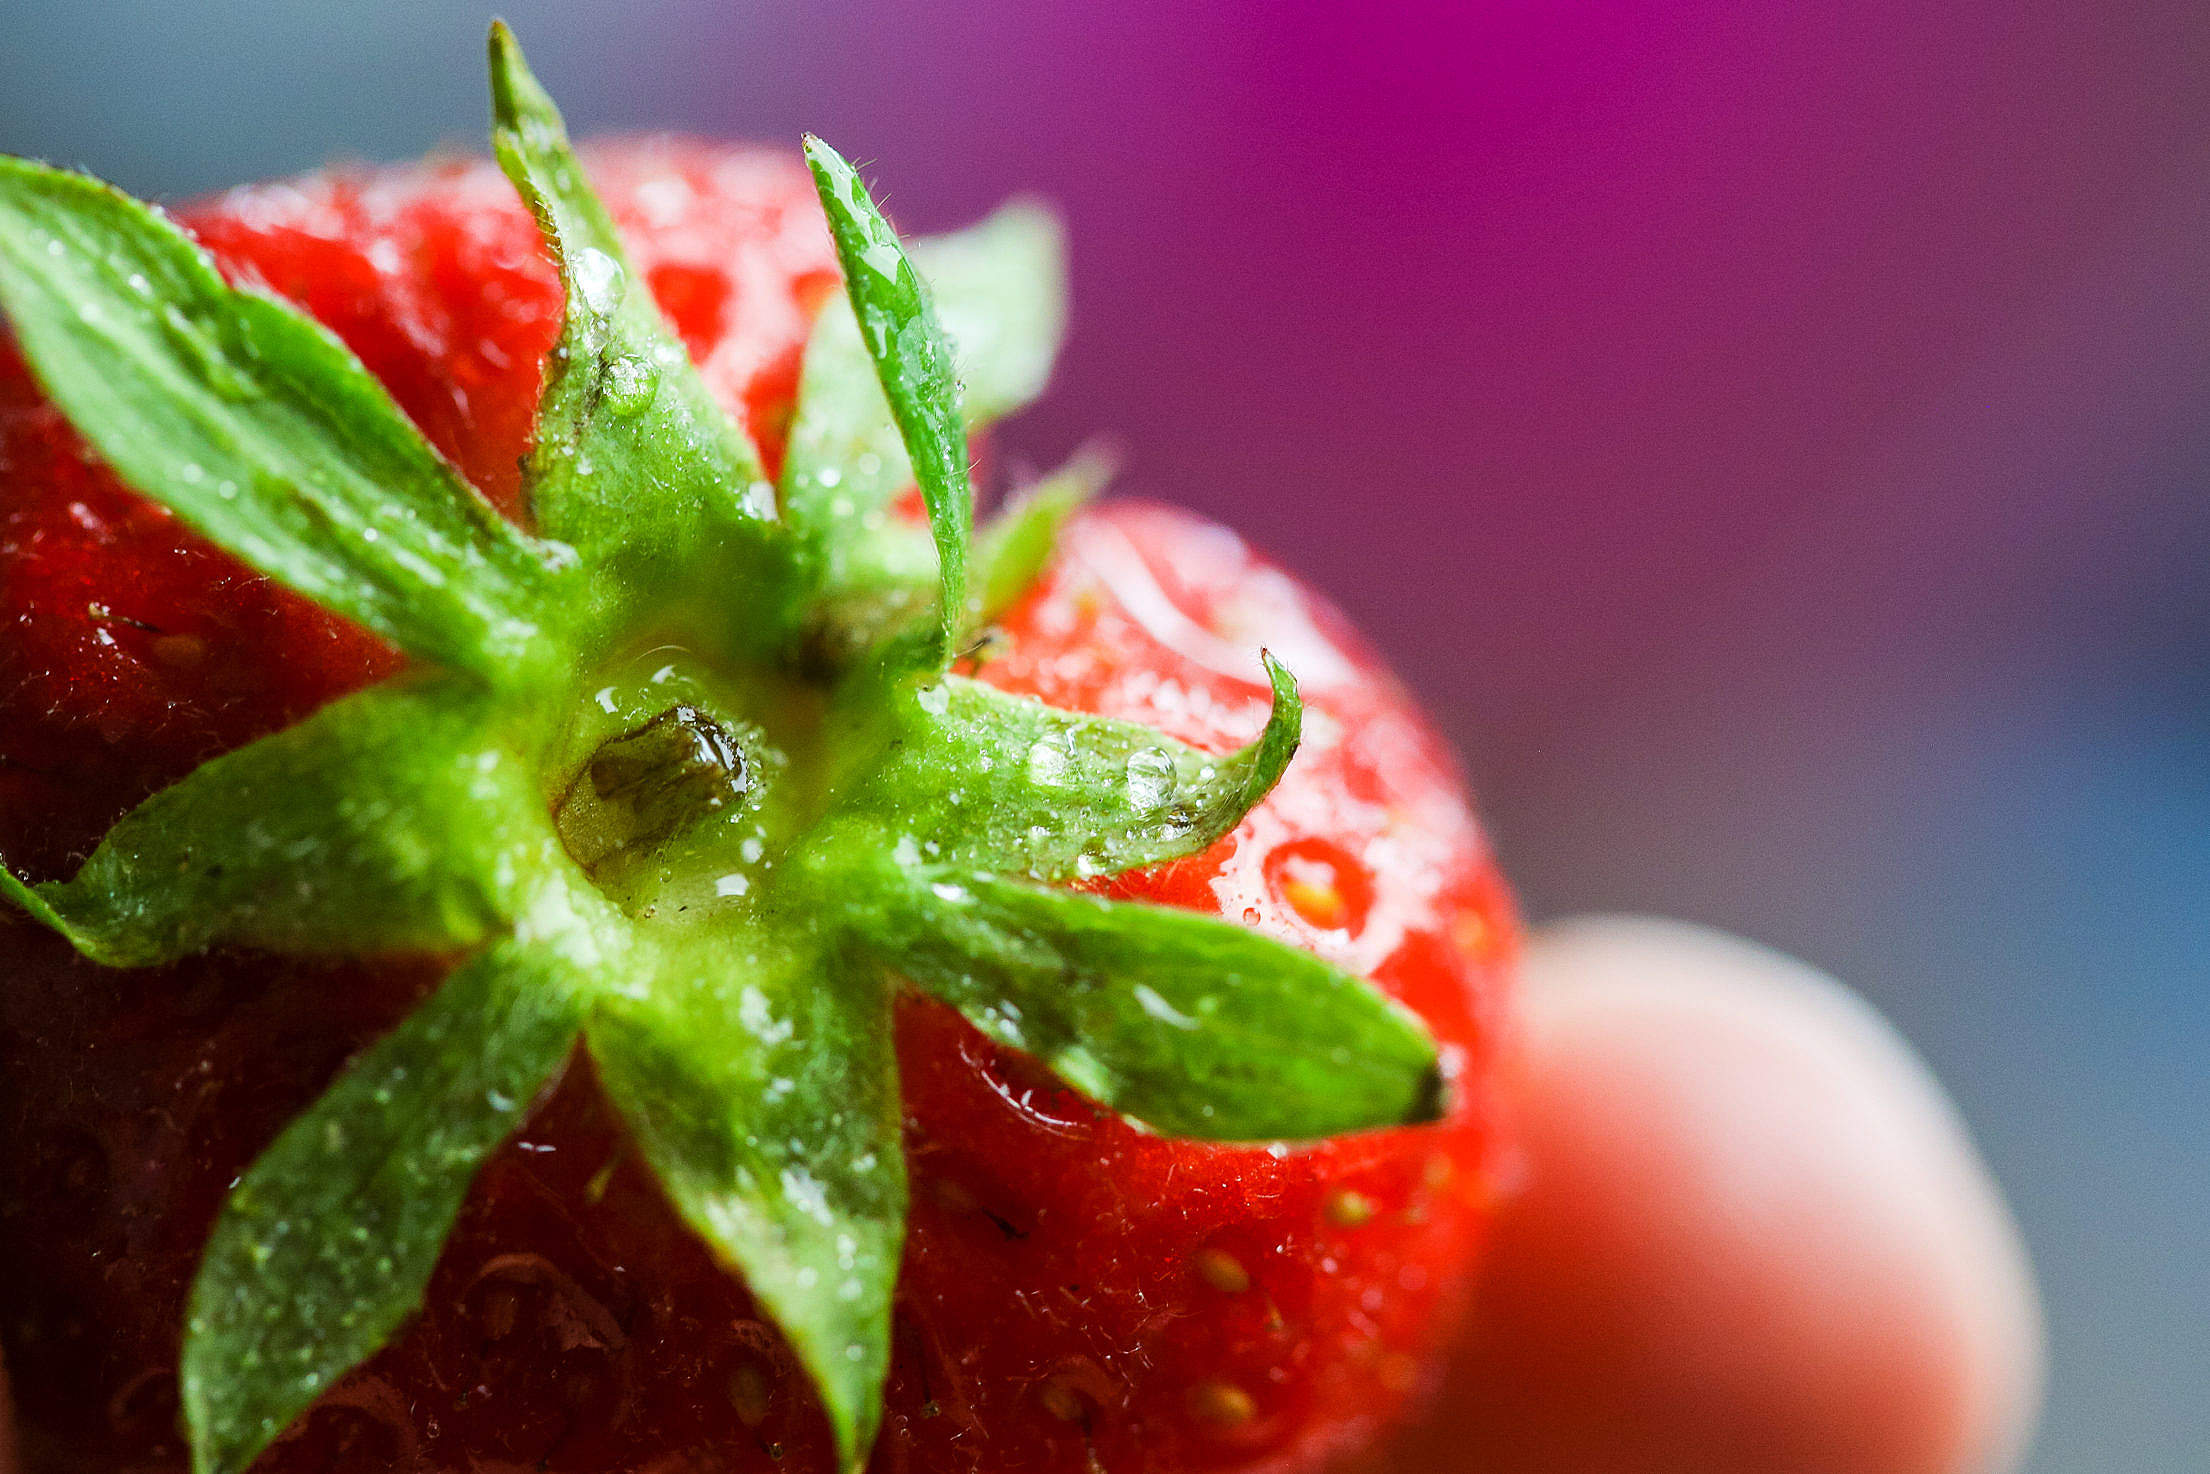 Colorful Strawberry Close Up Free Stock Photo